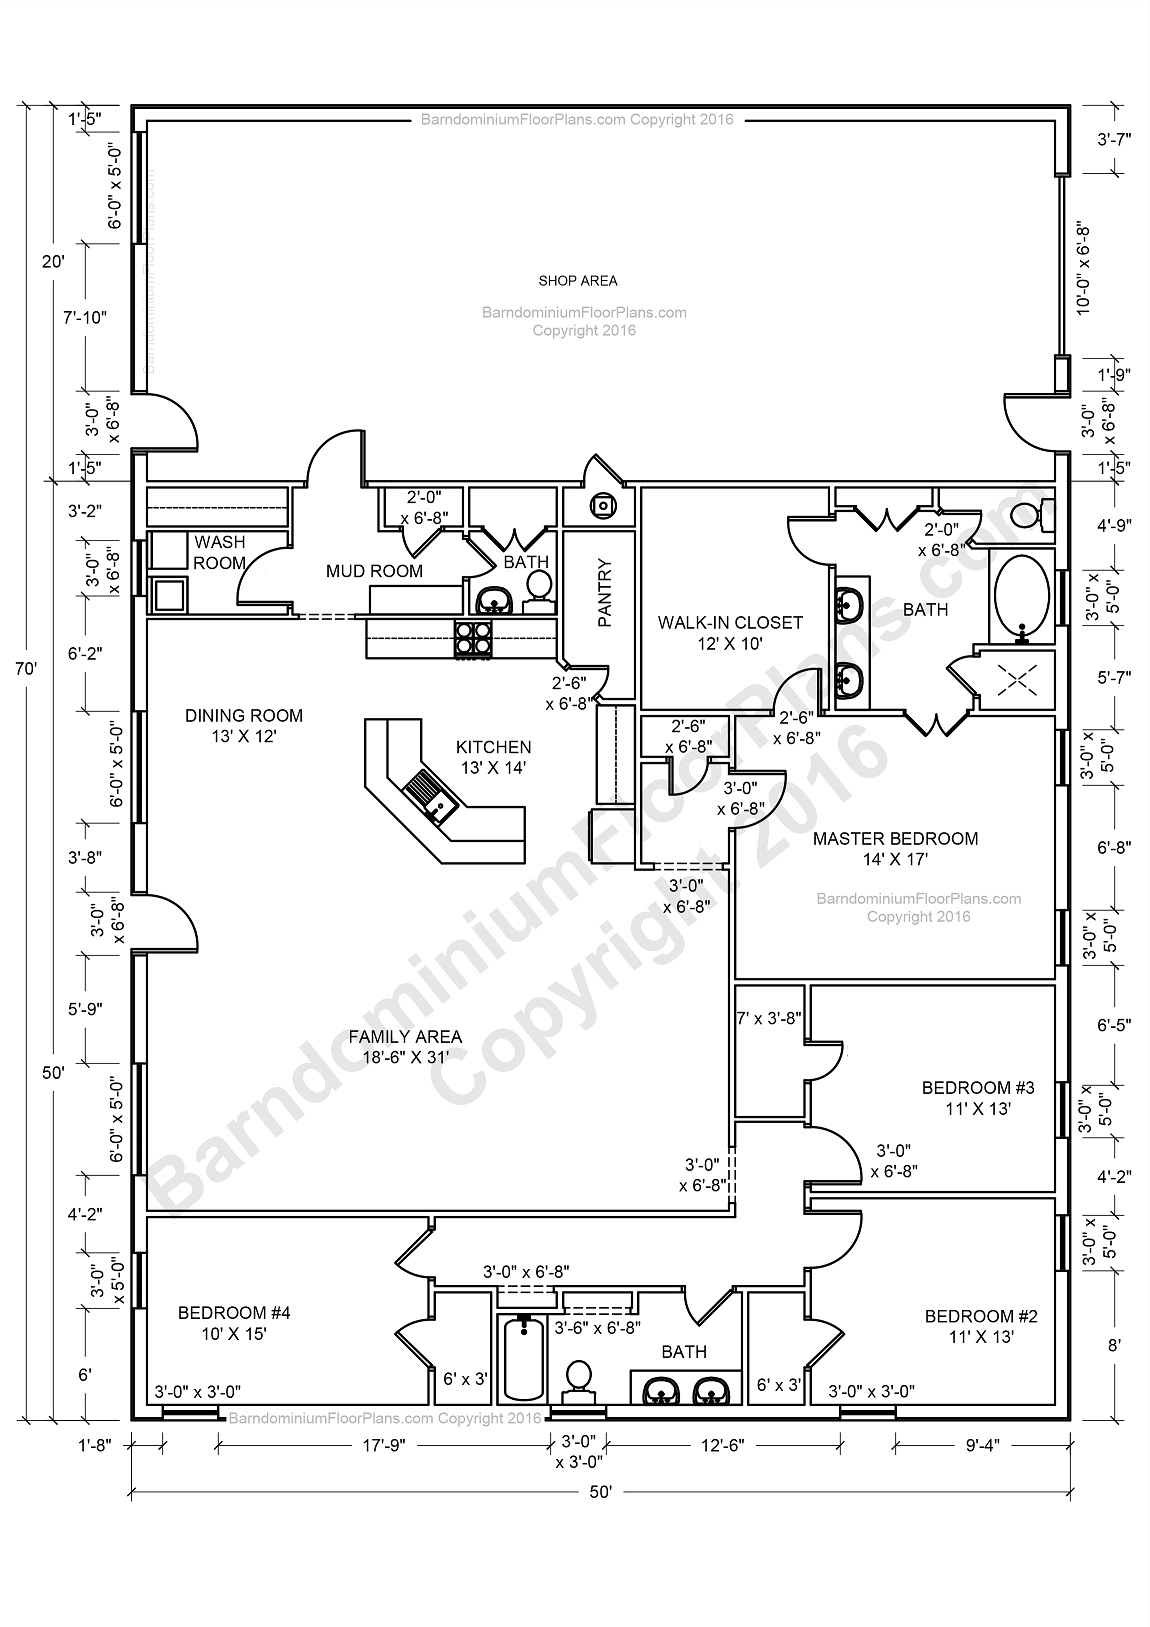 Barndominium floor plans barndominium floor plans 1 800 for Metal buildings floor plans